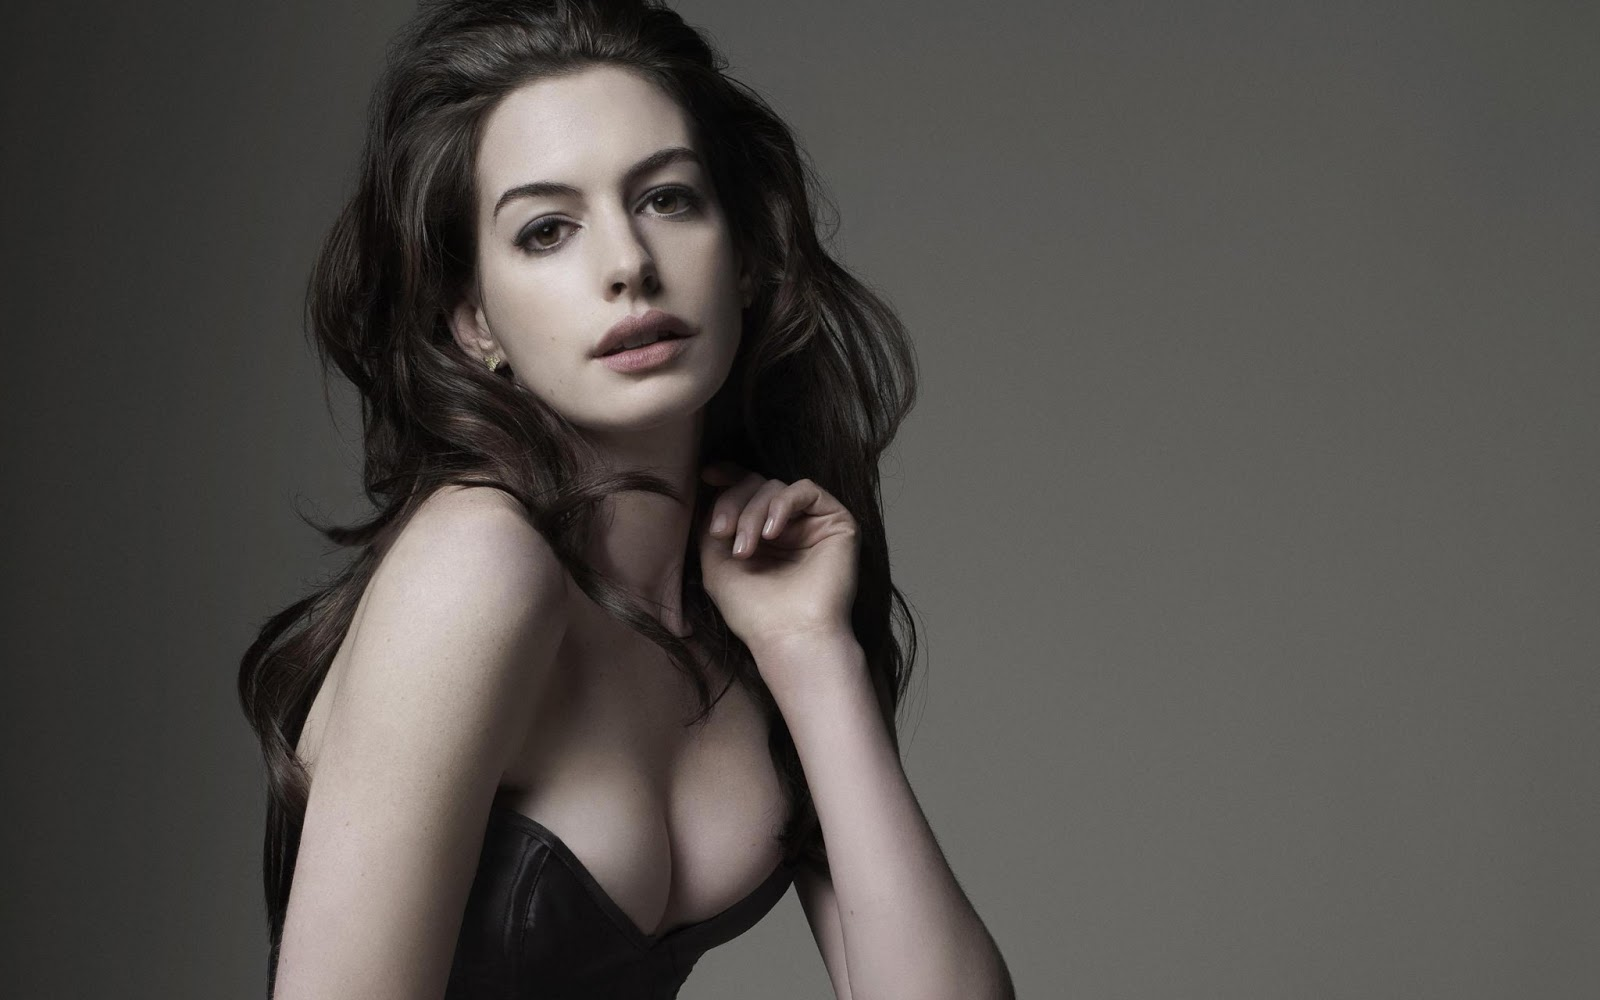 pics Anne Hathaway born November 12, 1982 (age 35)